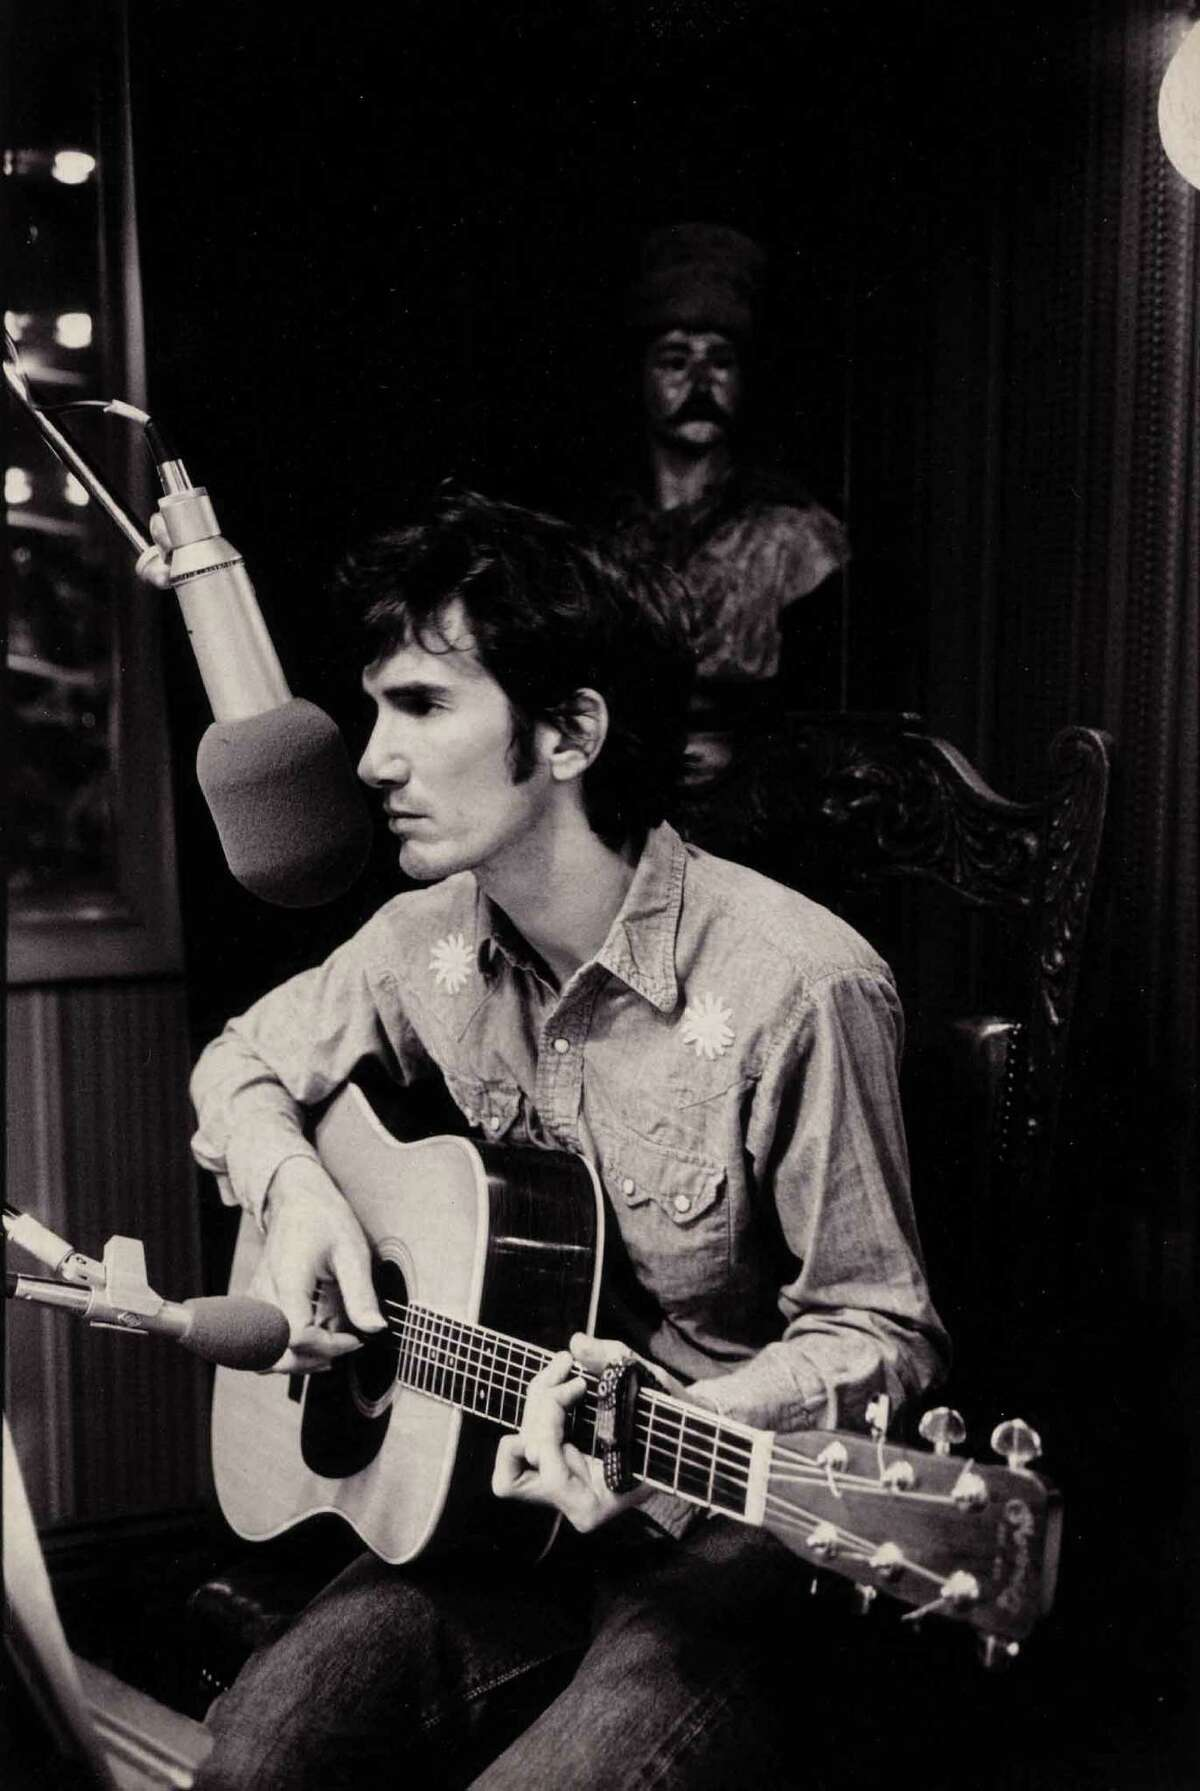 Townes Van Zandt, in BE HERE TO LOVE ME: A FILM ABOUT TOWNES VAN ZANDT, a Palm Pictures release 2005. Photo courtesy of Jeanene Van Zandt. emailed photo